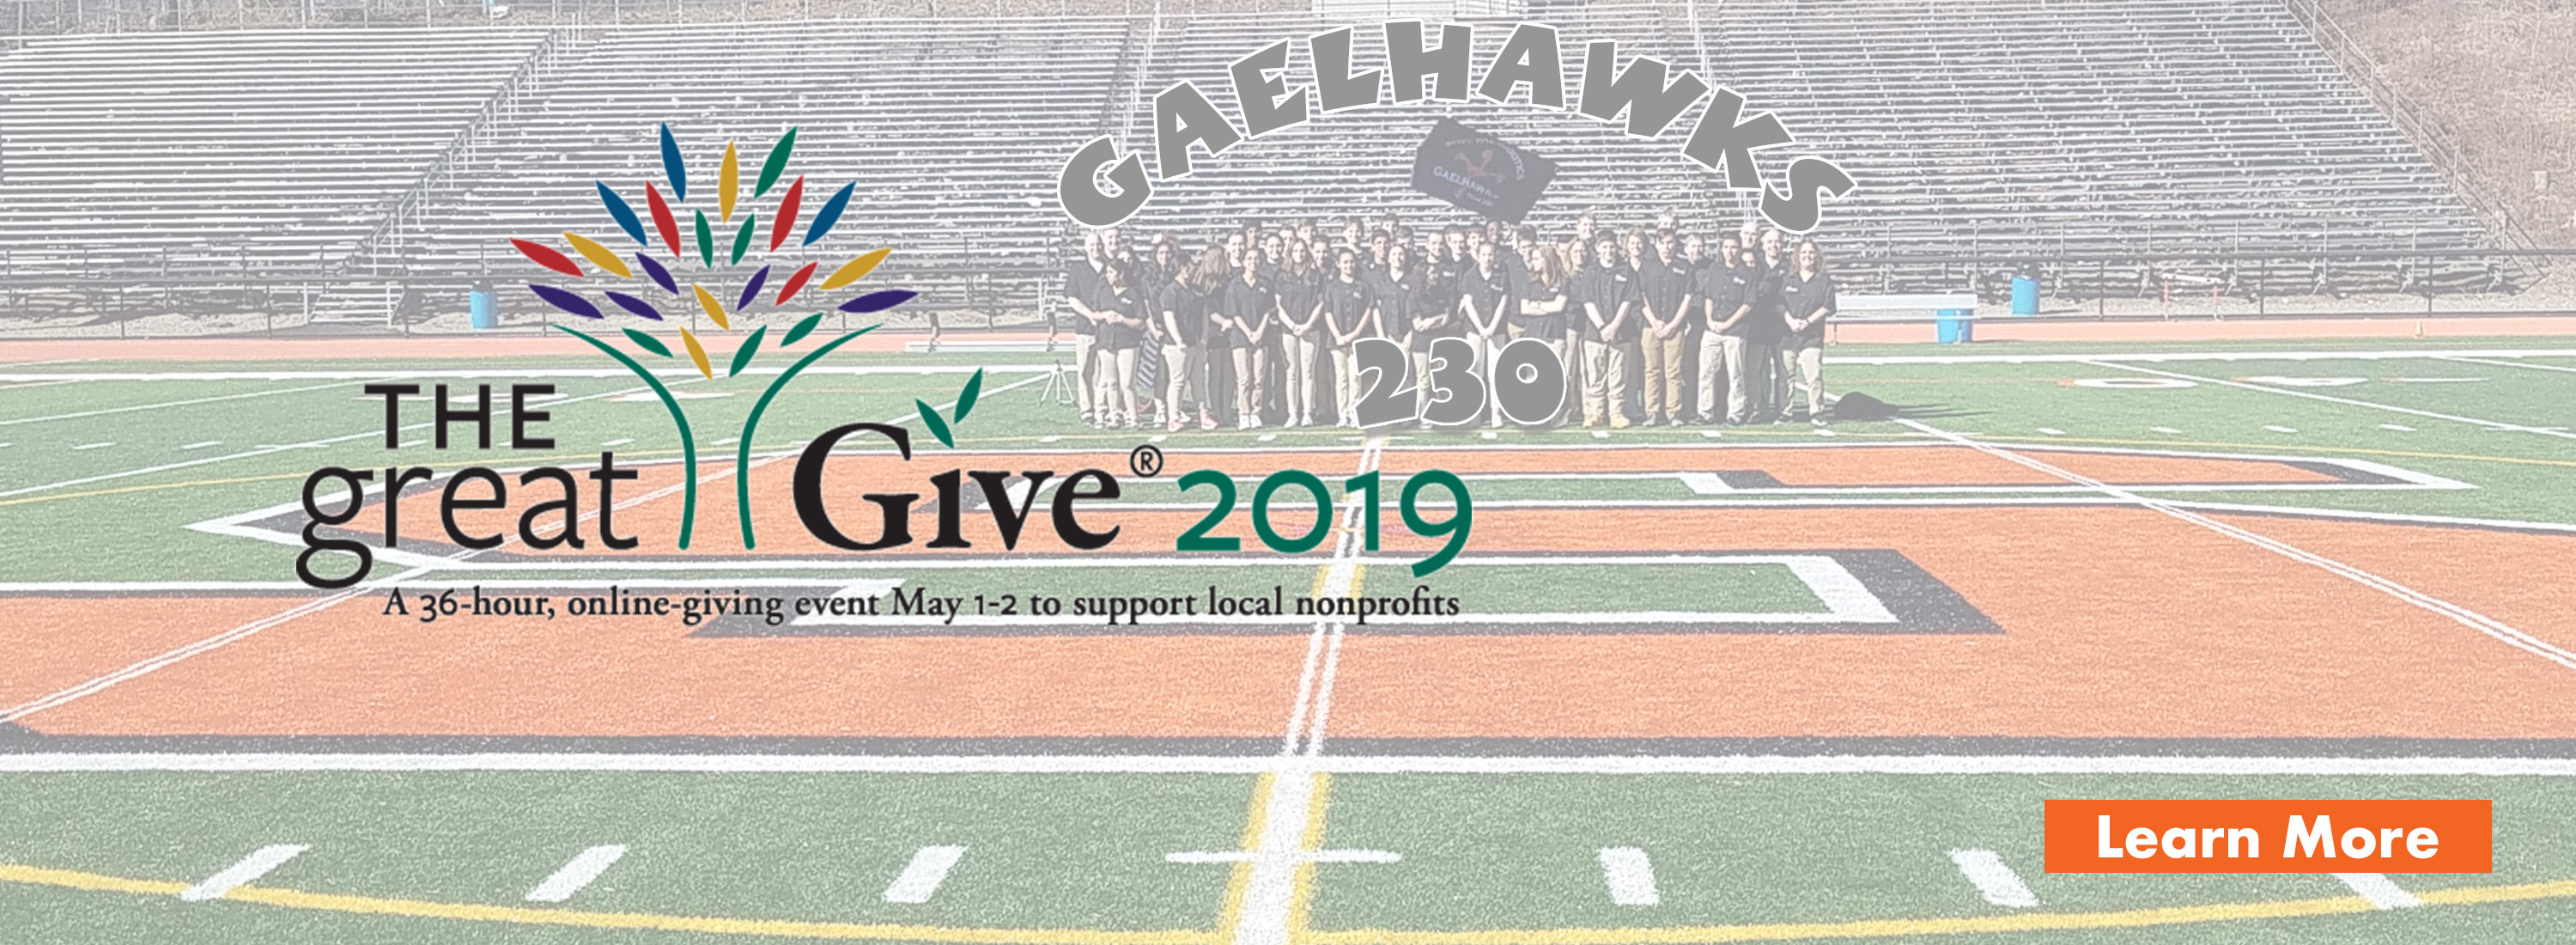 GreatGive2019